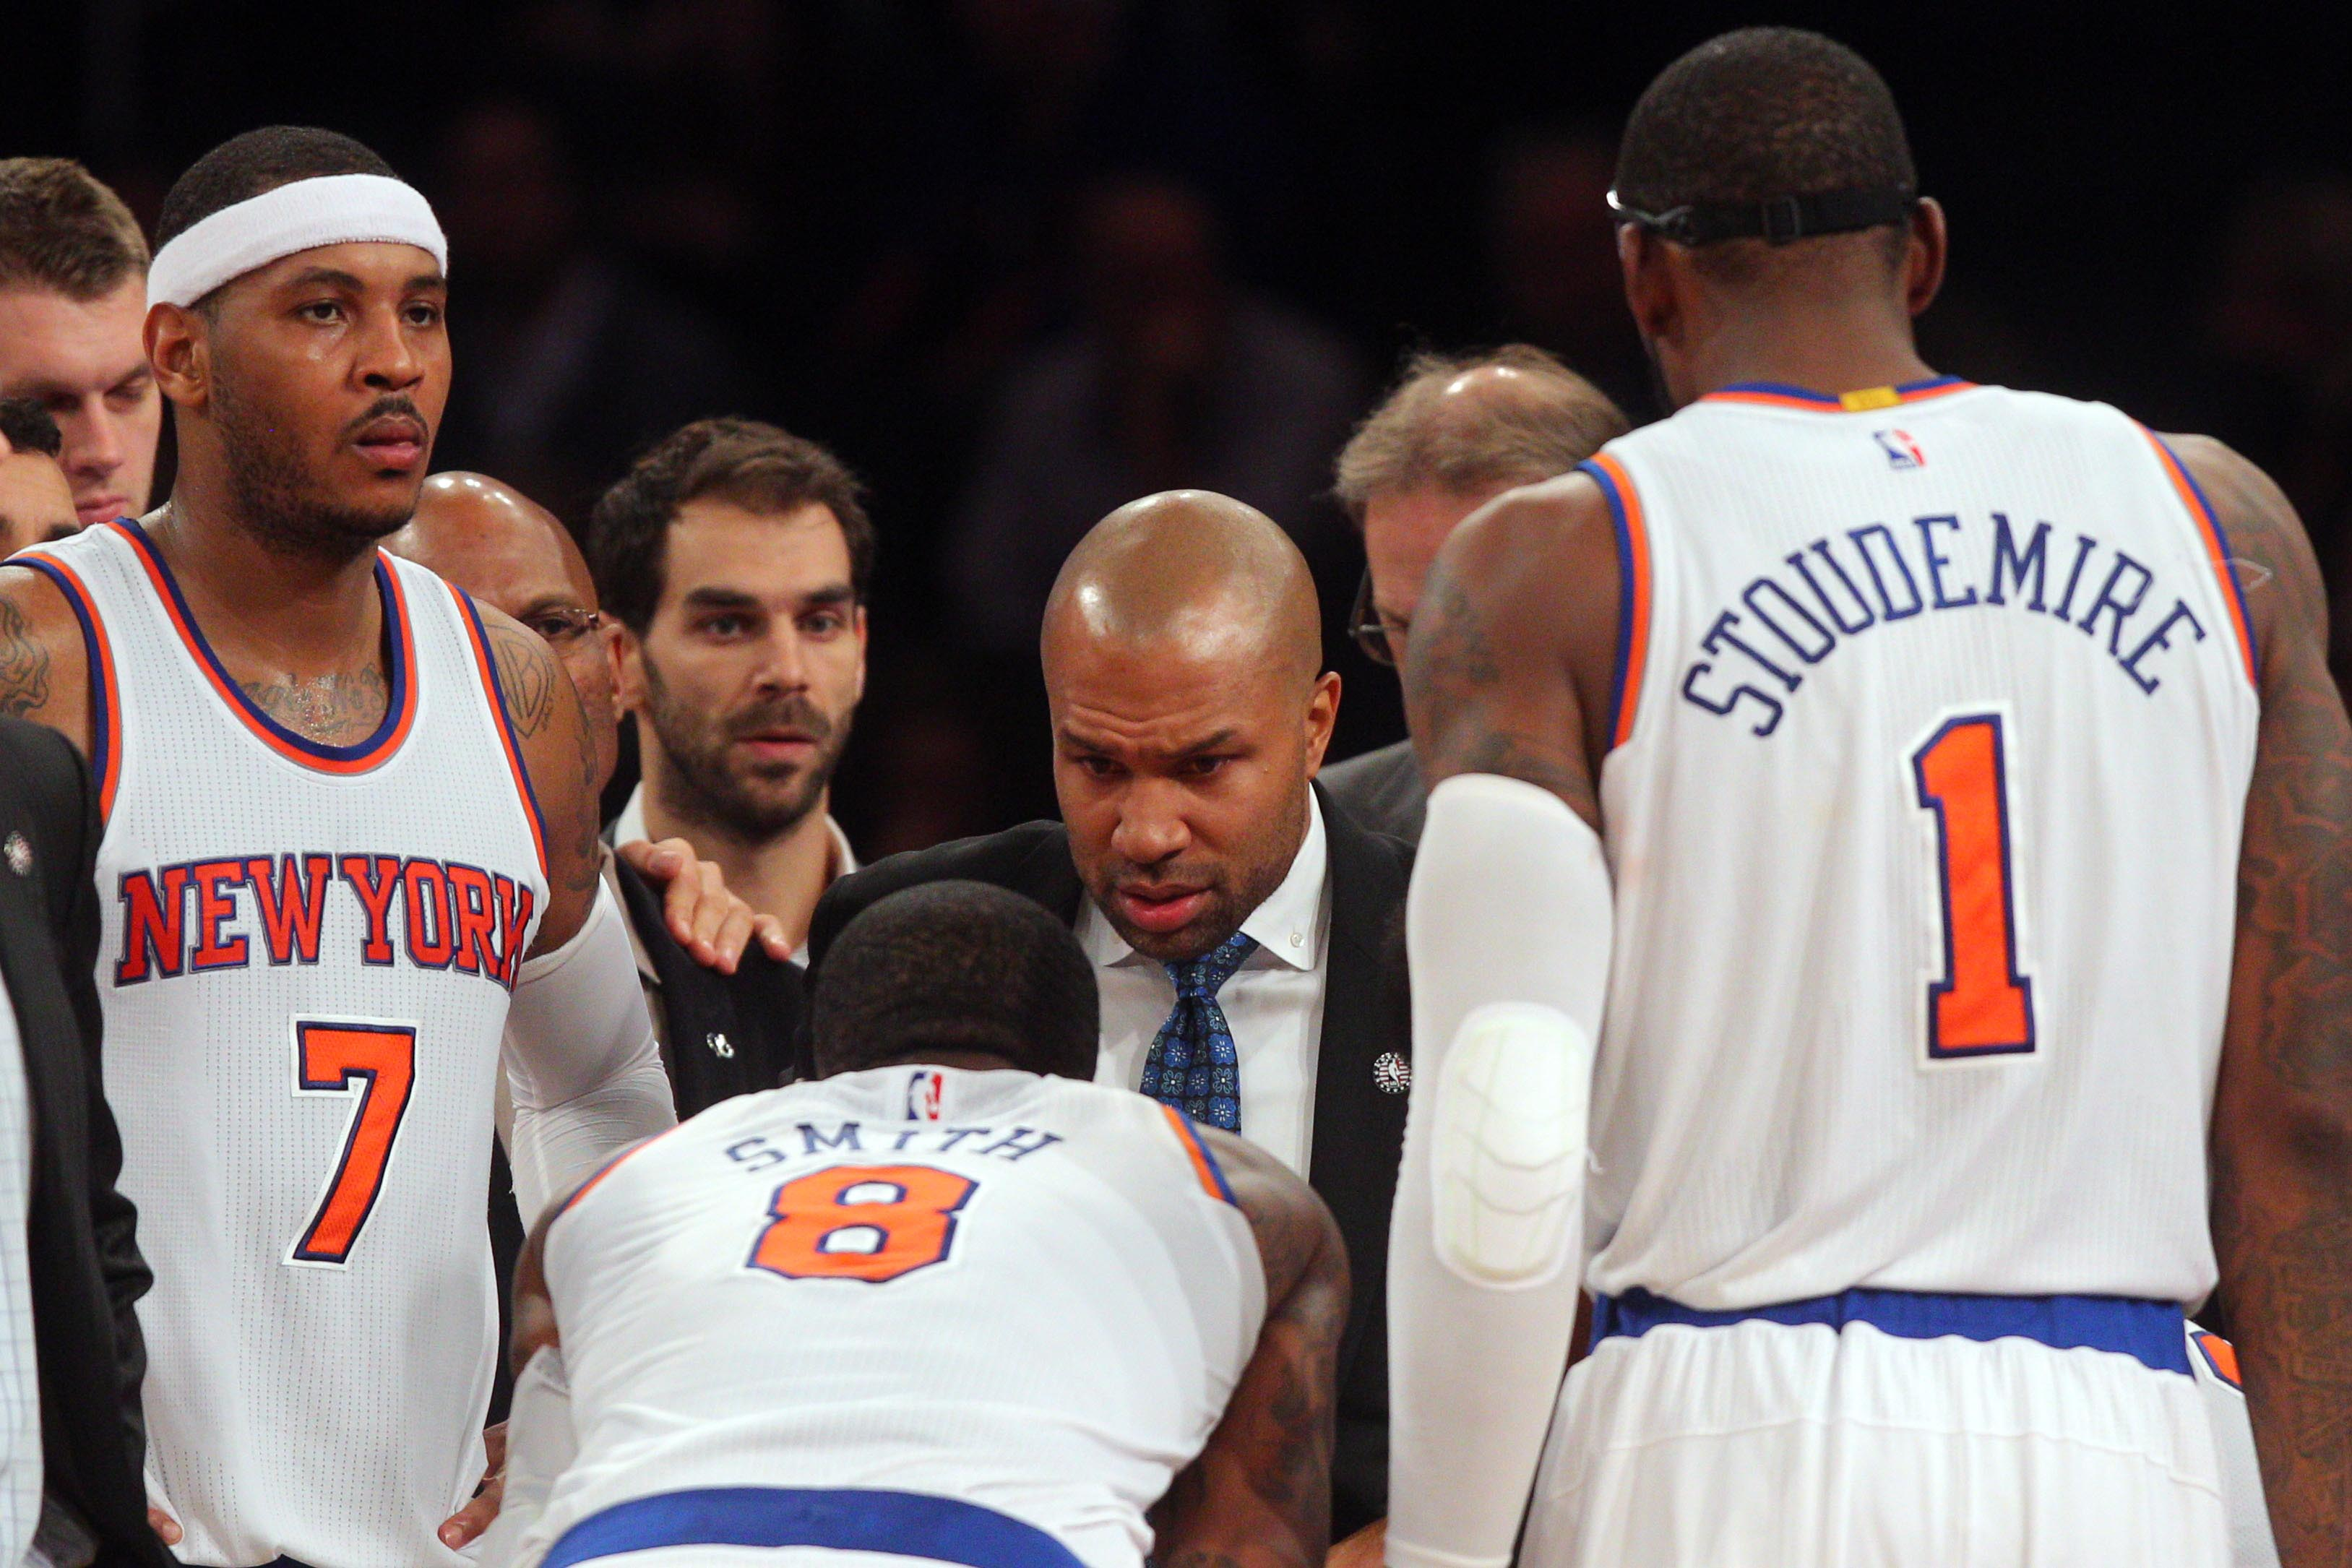 Nov 10, 2014; New York, NY, USA; New York Knicks head coach Derek Fisher coaches New York Knicks small forward Carmelo Anthony (7) and New York Knicks shooting guard J.R. Smith (8) and New York Knicks power forward Amar'e Stoudemire (1) against the Atlanta Hawks during the fourth quarter at Madison Square Garden. The Hawks defeated the Knicks 91-85.